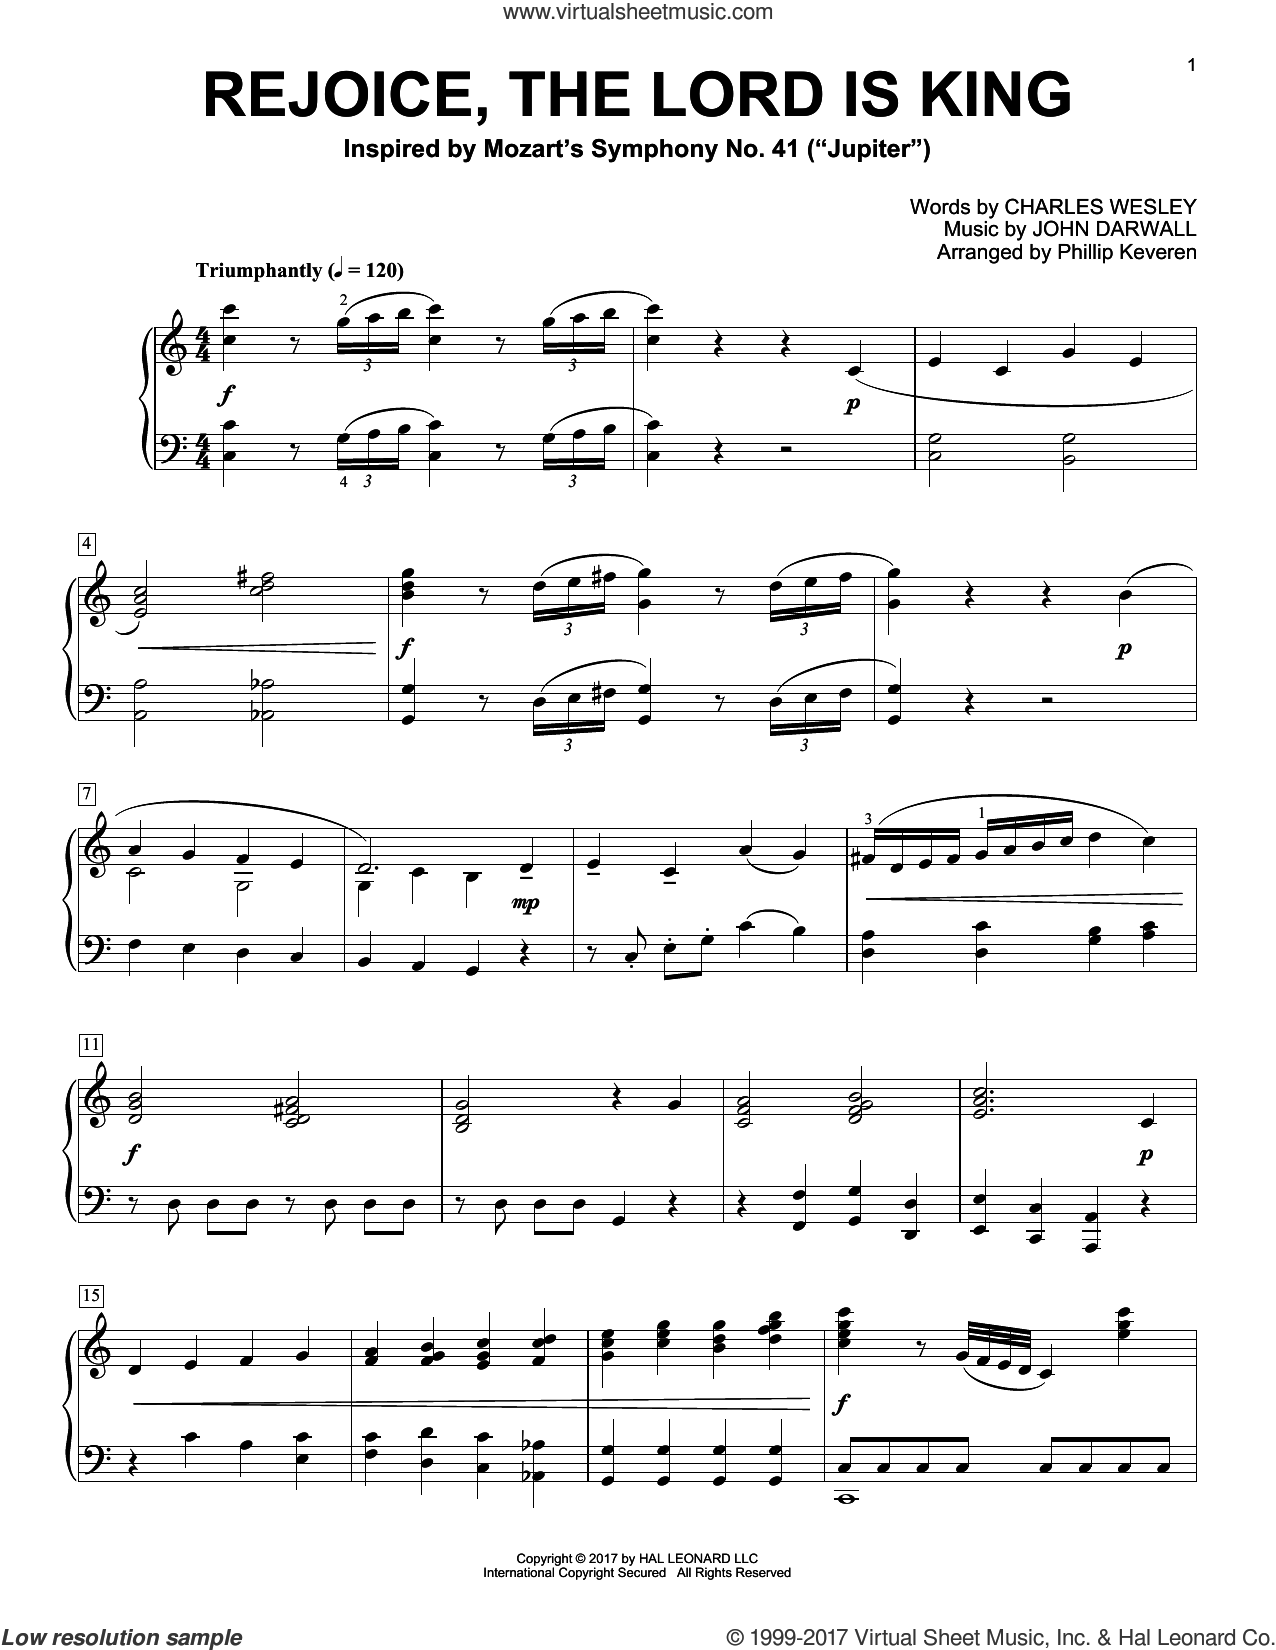 Rejoice, The Lord Is King sheet music for piano solo by Charles Wesley, Phillip Keveren and John Darwall, intermediate skill level